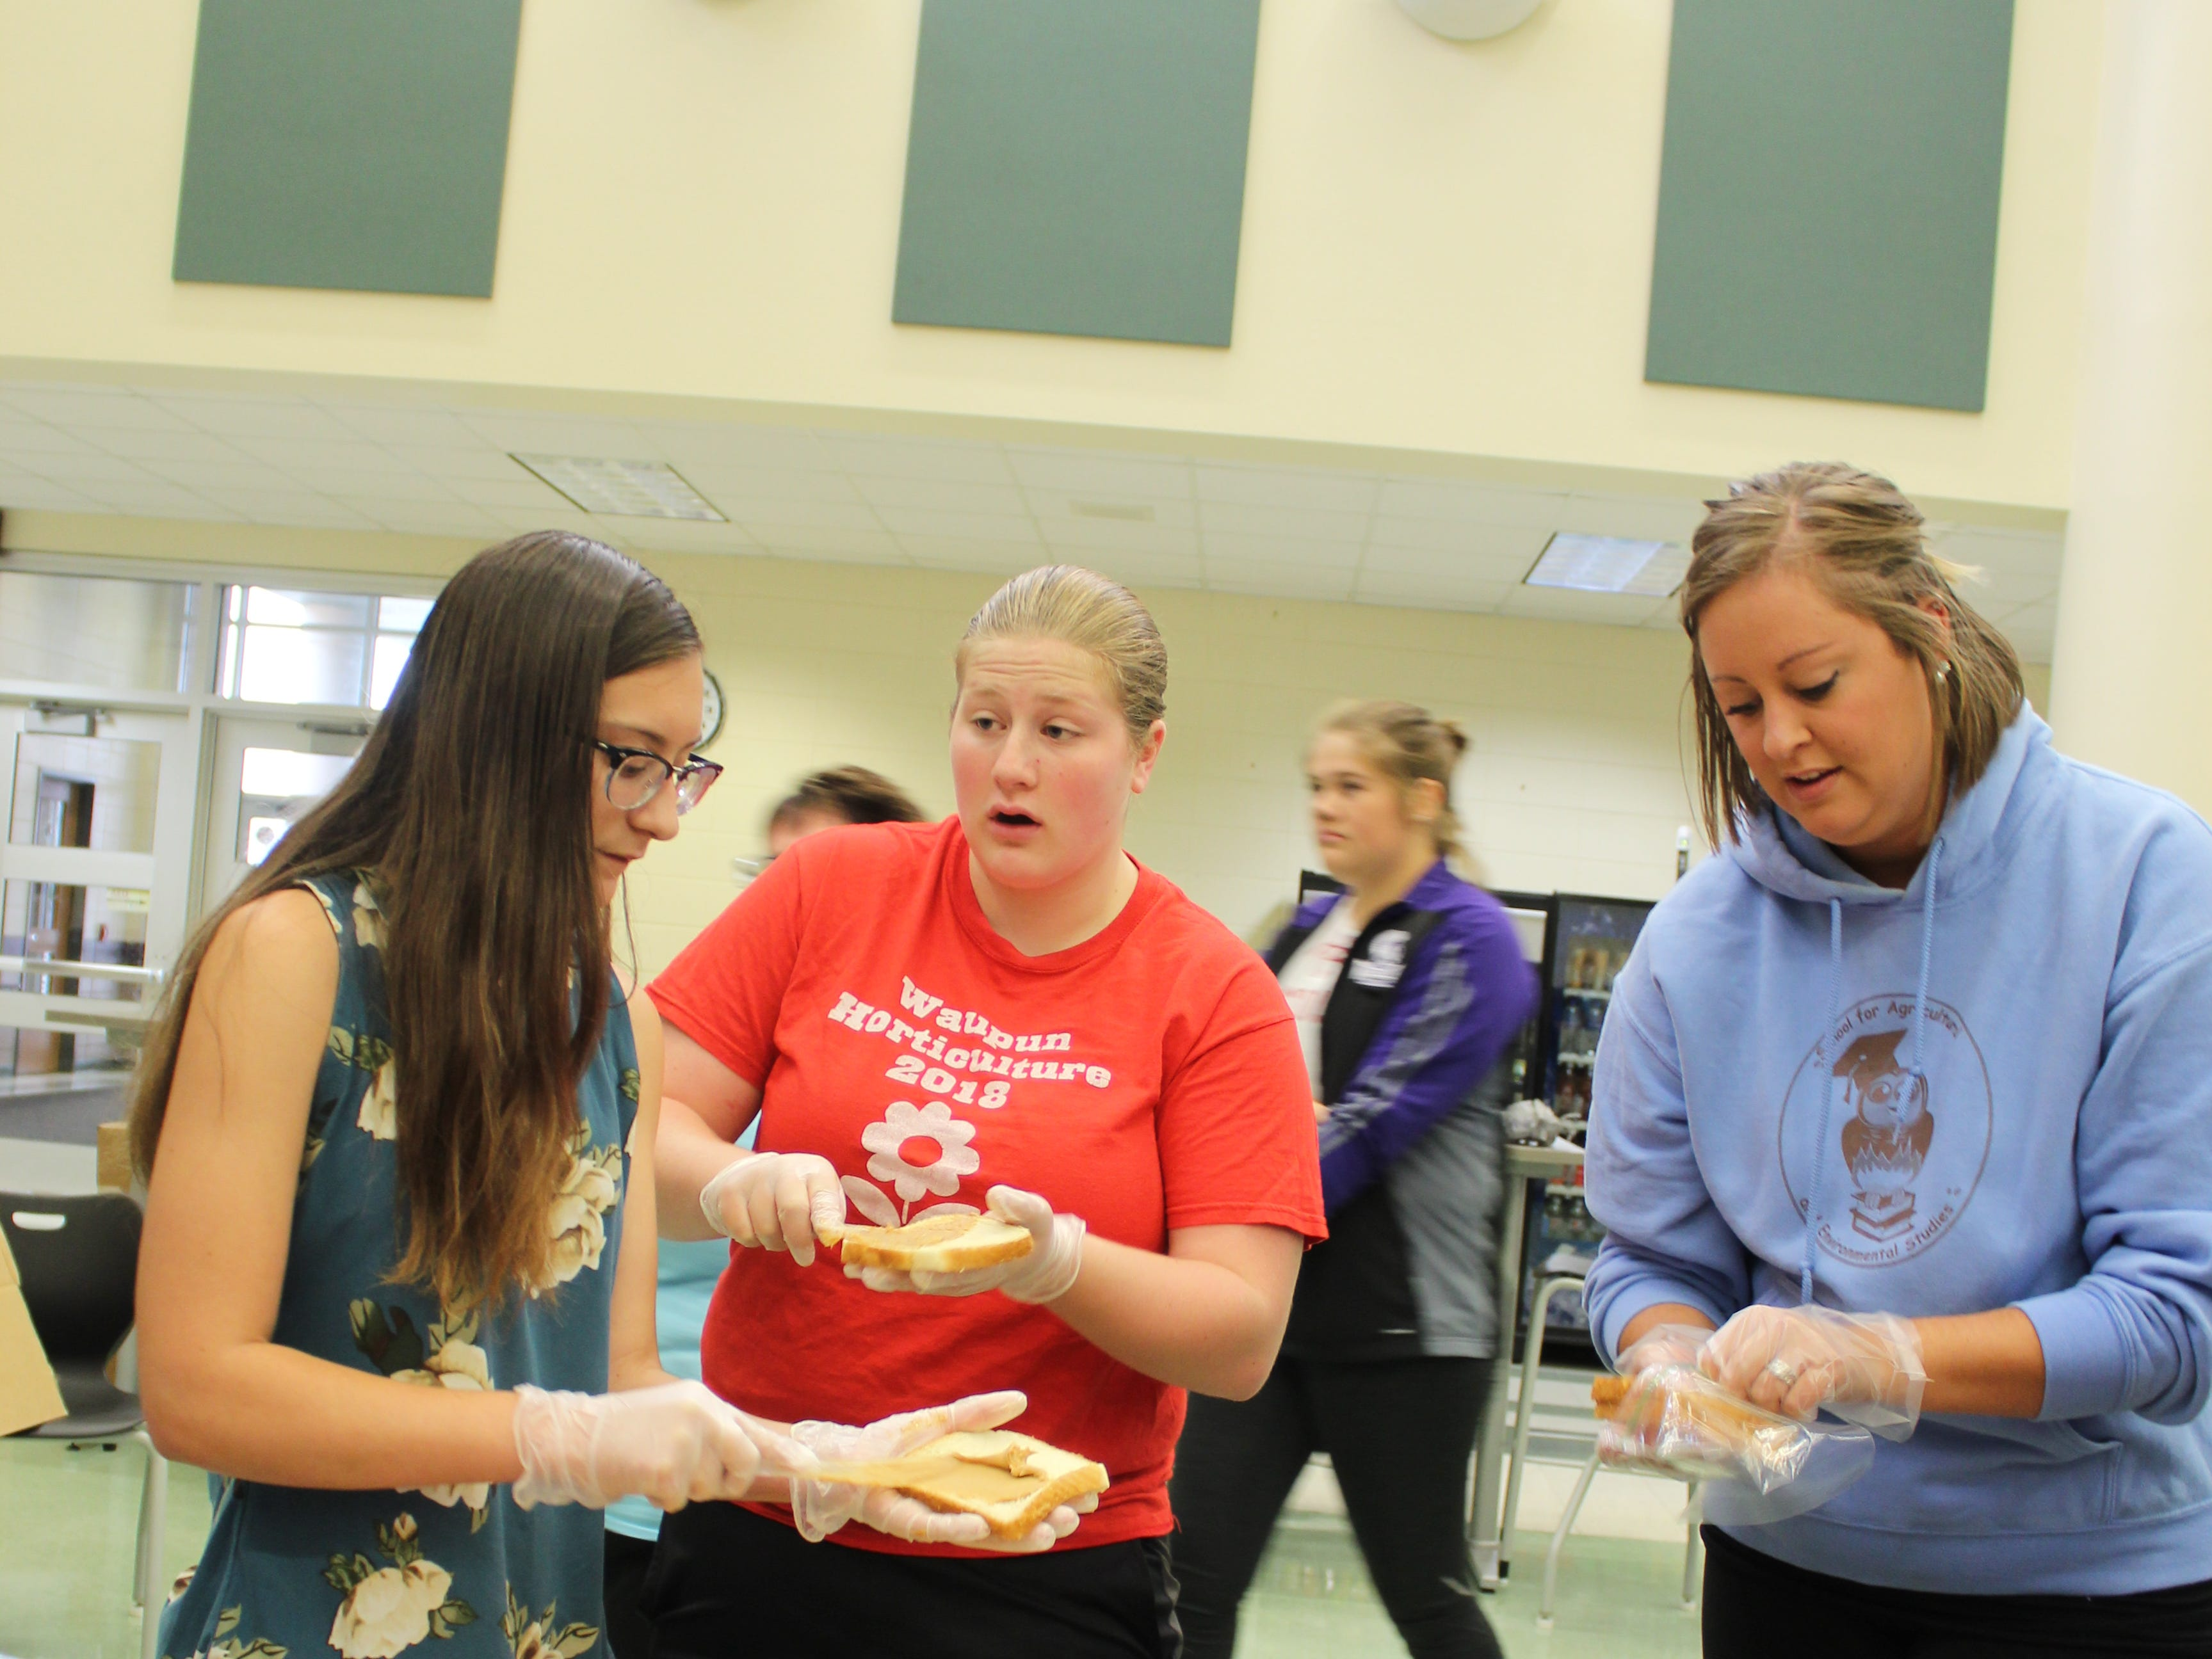 Waupun FFA members (from left) Sam Horning, Alexa Kuhn and Kelli Bonack make sandwiches for volunteers and utility workers cleaning up and repairing damage in the wake of the July 28 storm.